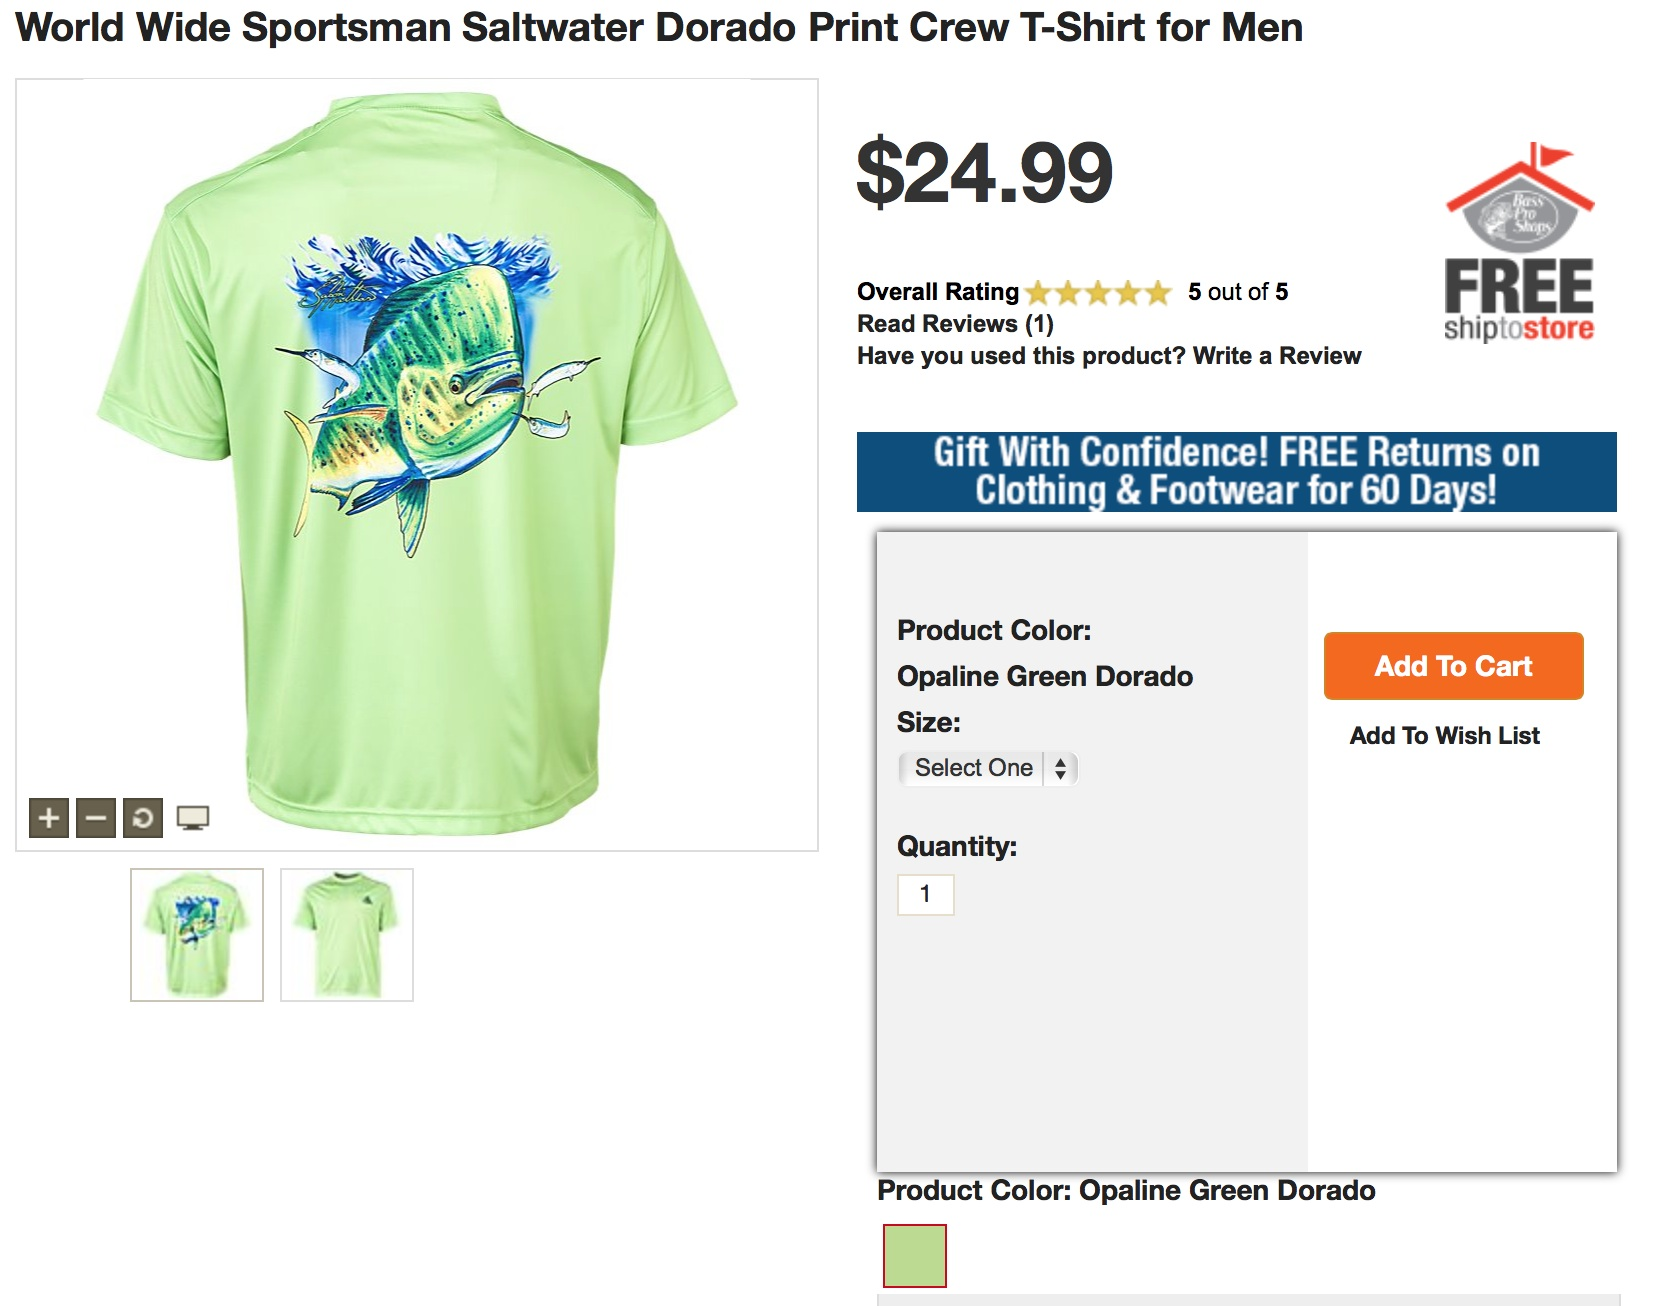 mahi-dorado-jason-mathias-world-wide-sportsman-shirt.jpg